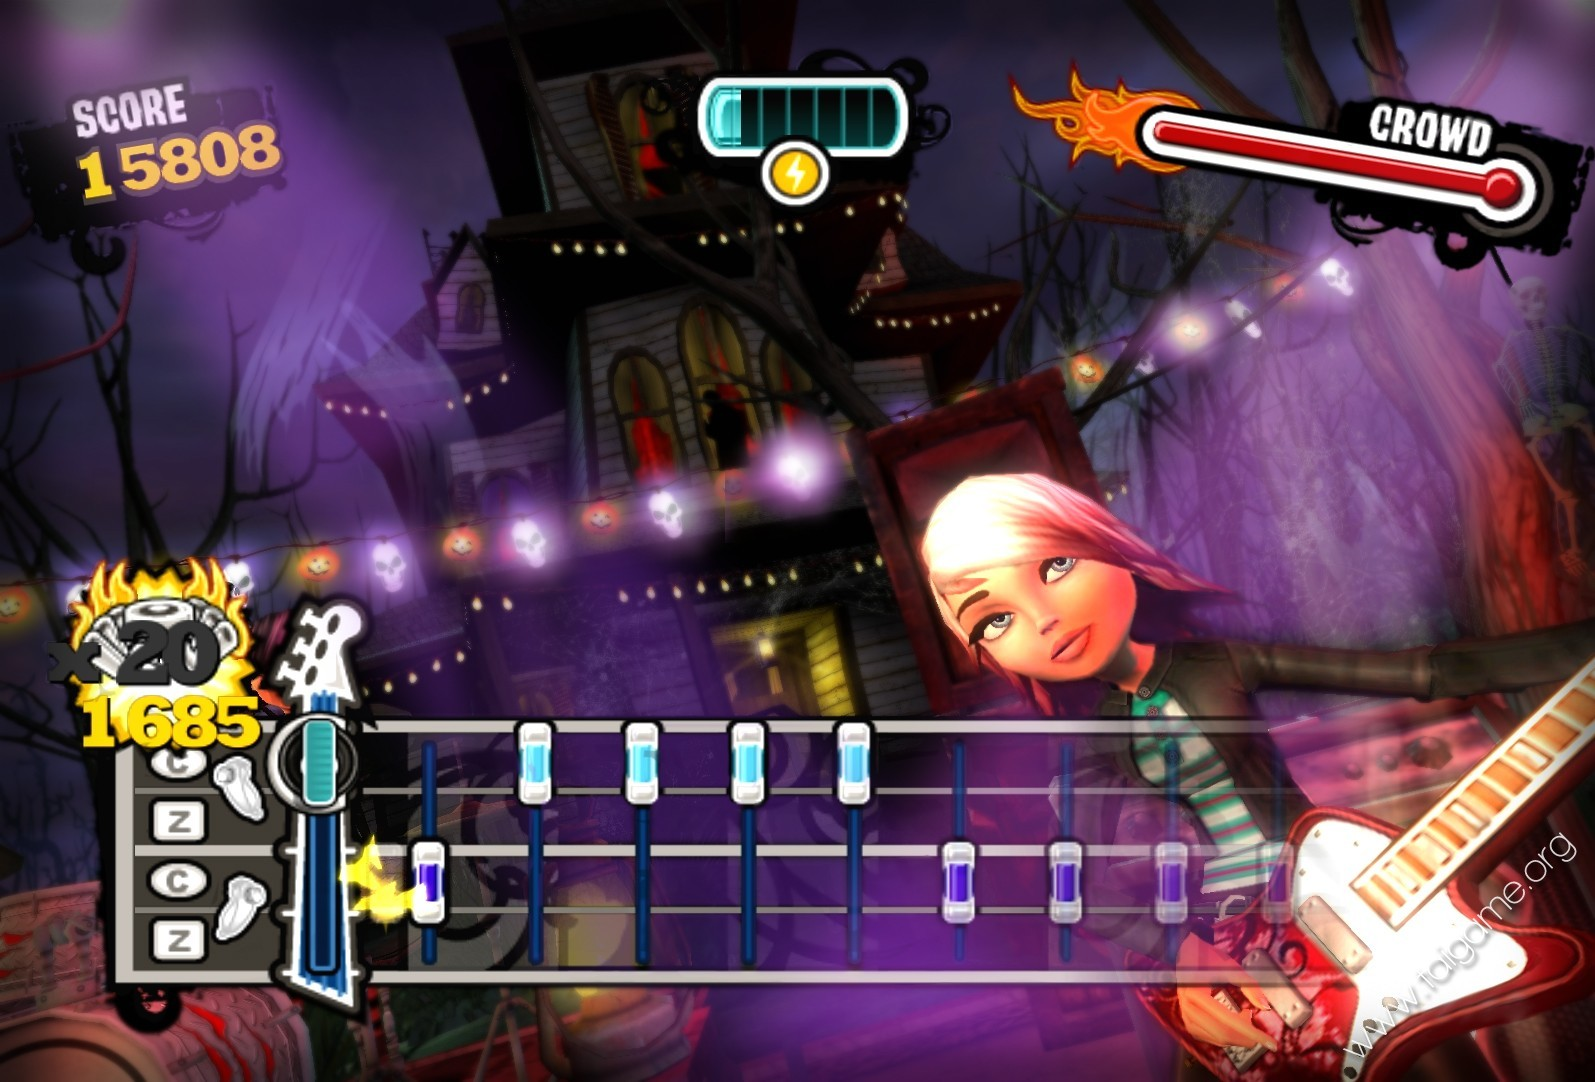 How to Add Custom Songs to Guitar Hero 3 Wii Part 1